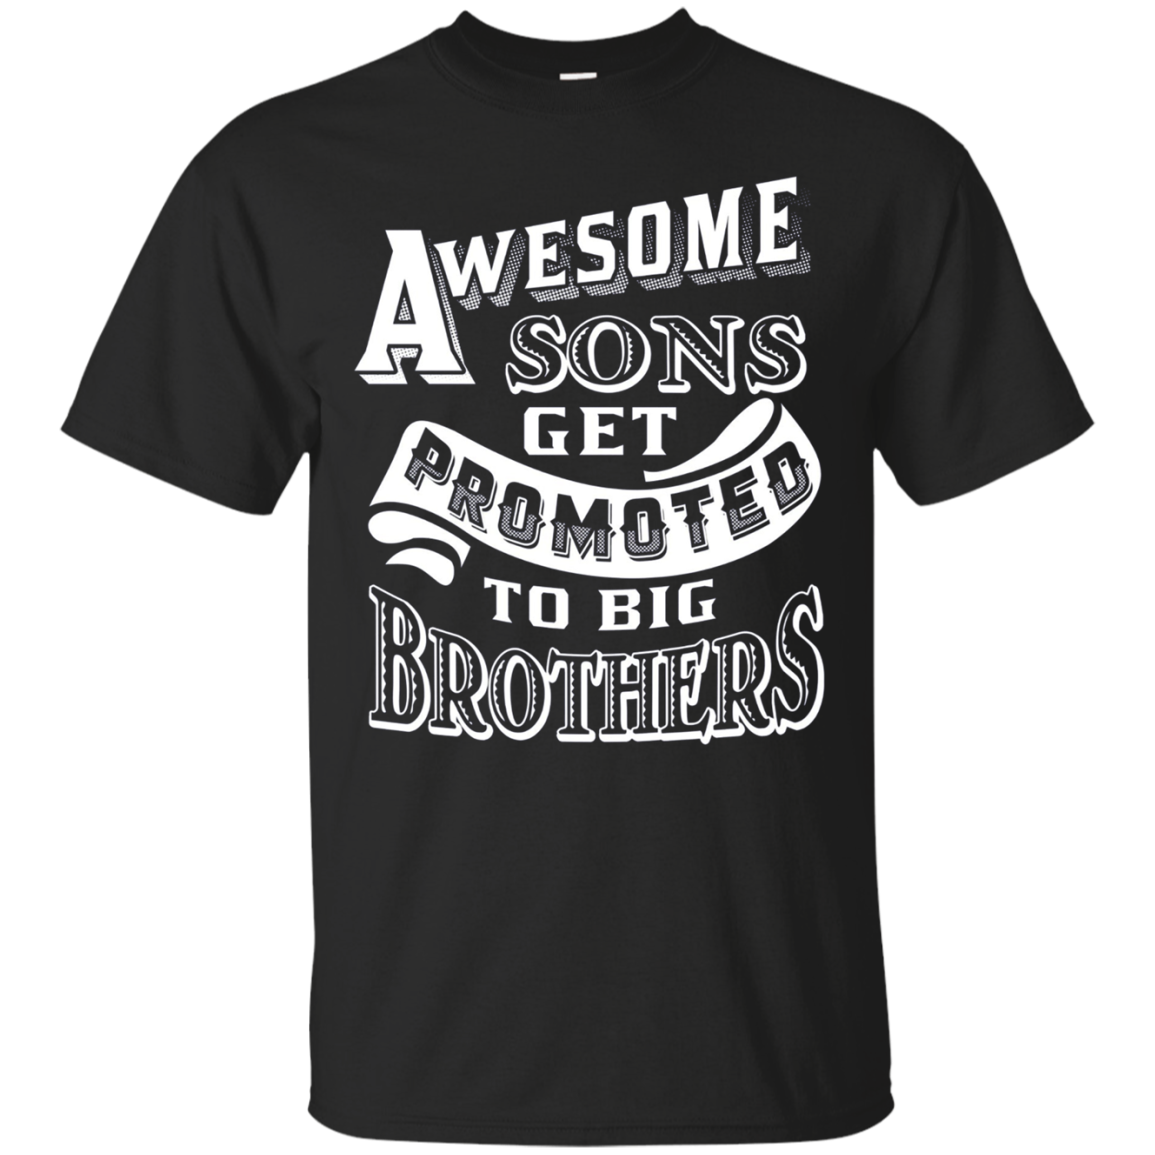 Awesome Sons Get Promoted to Big Brothers T-shirt